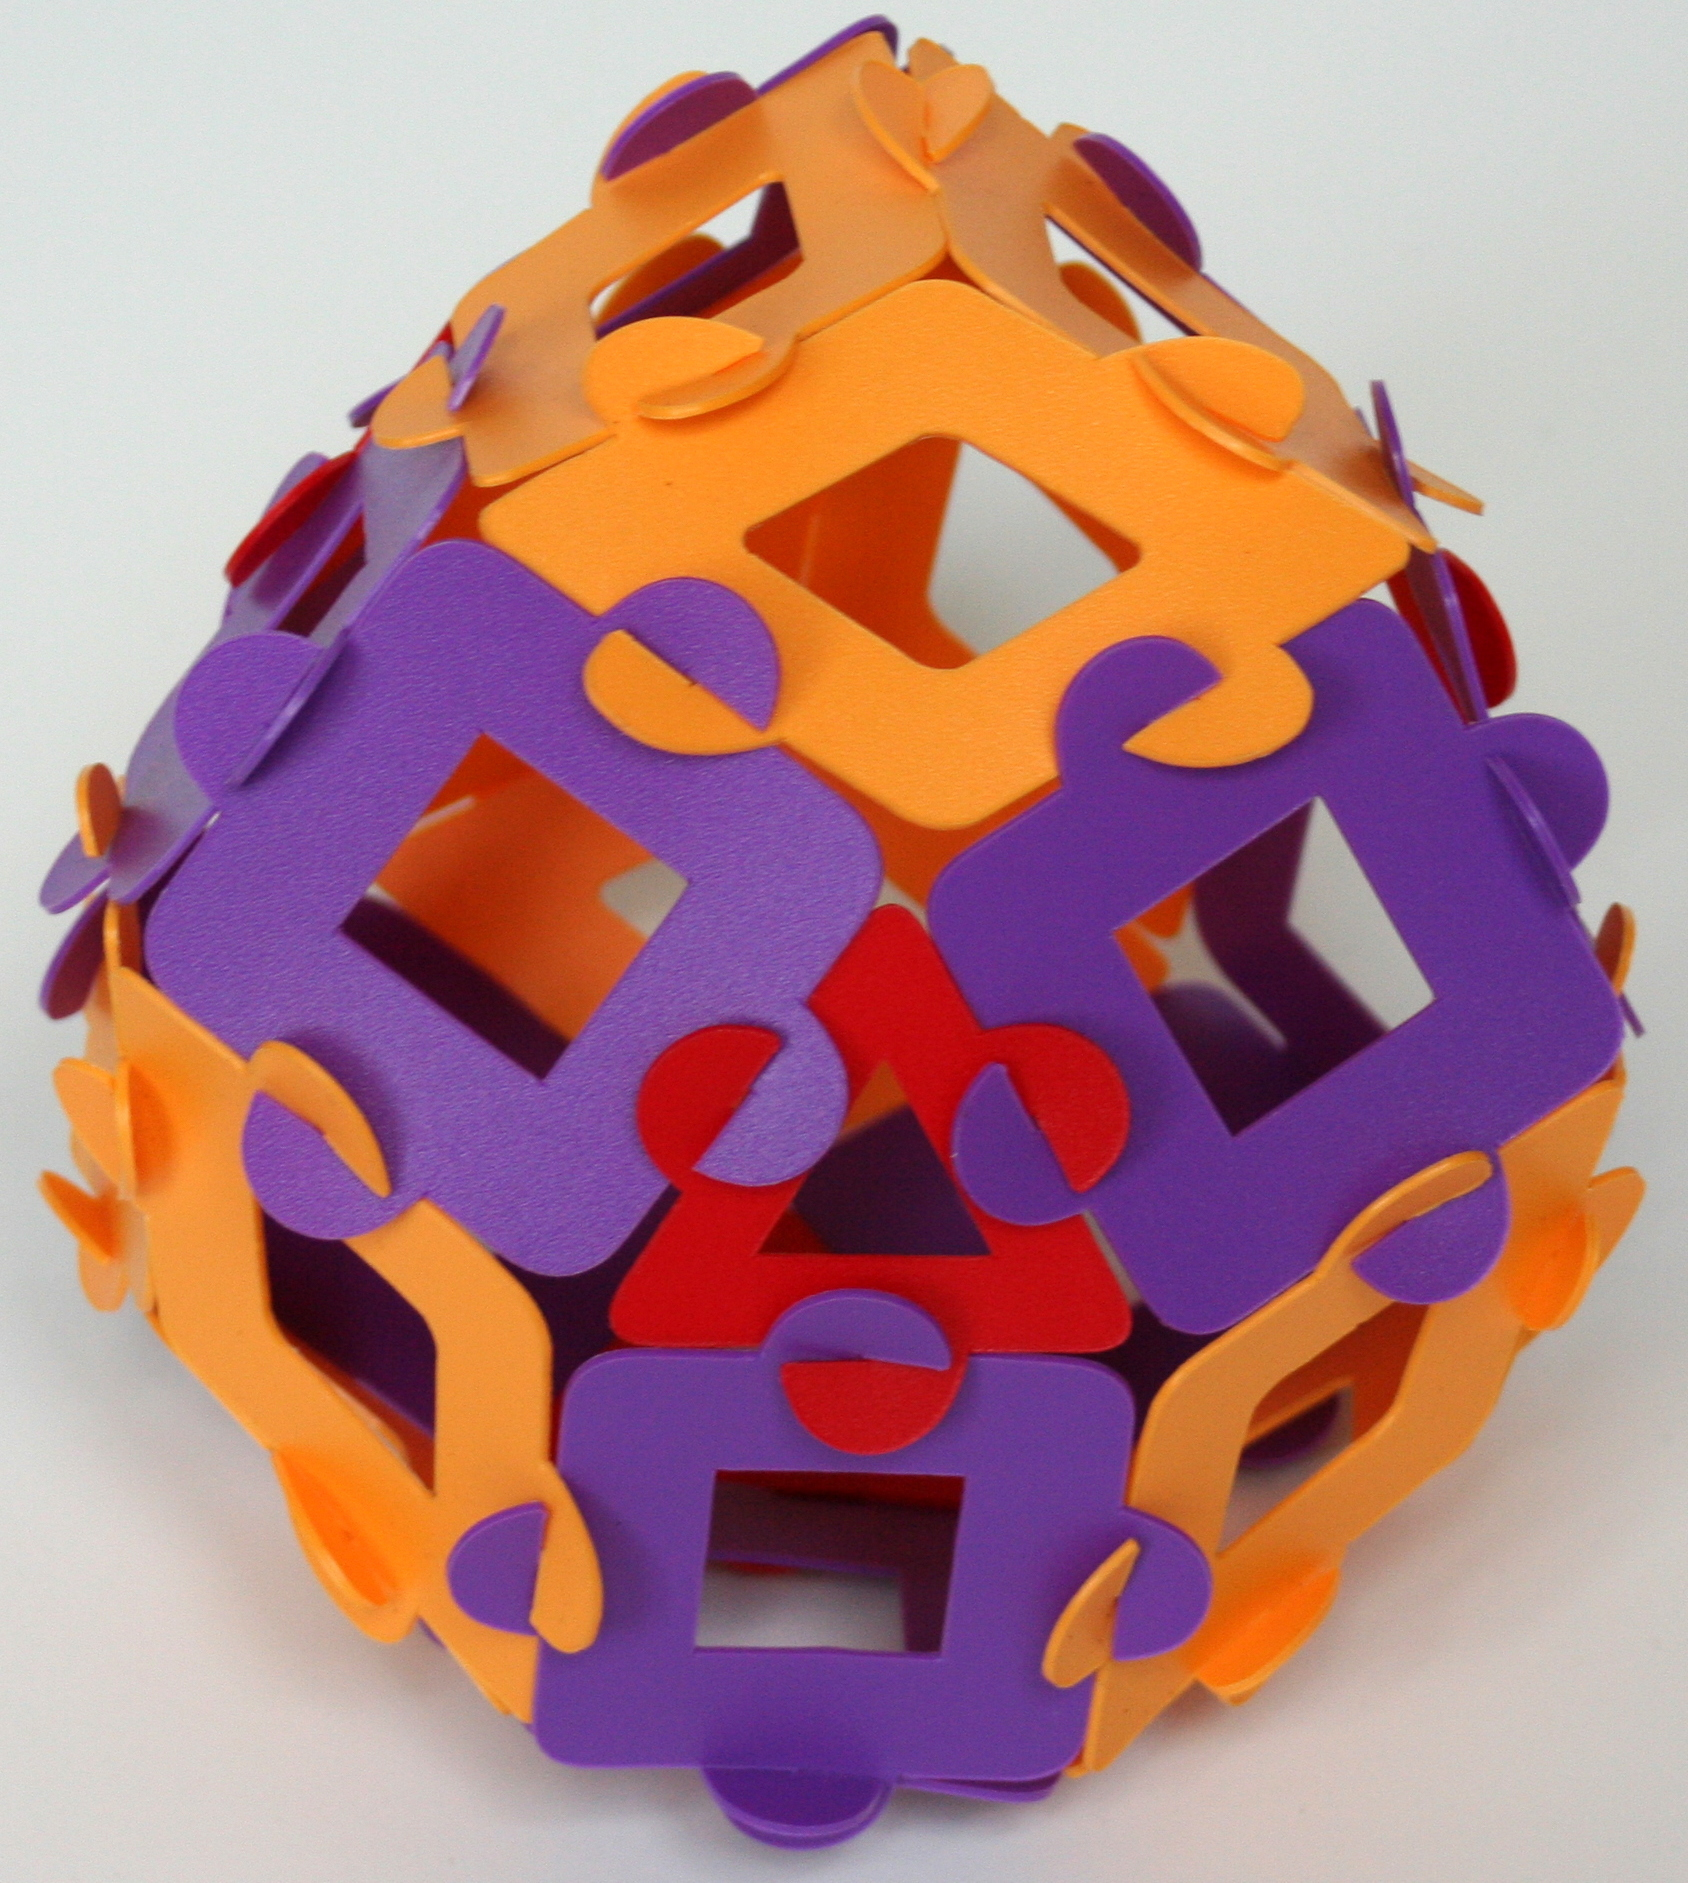 Tetrahedrally expanded rhombic dodecahedron